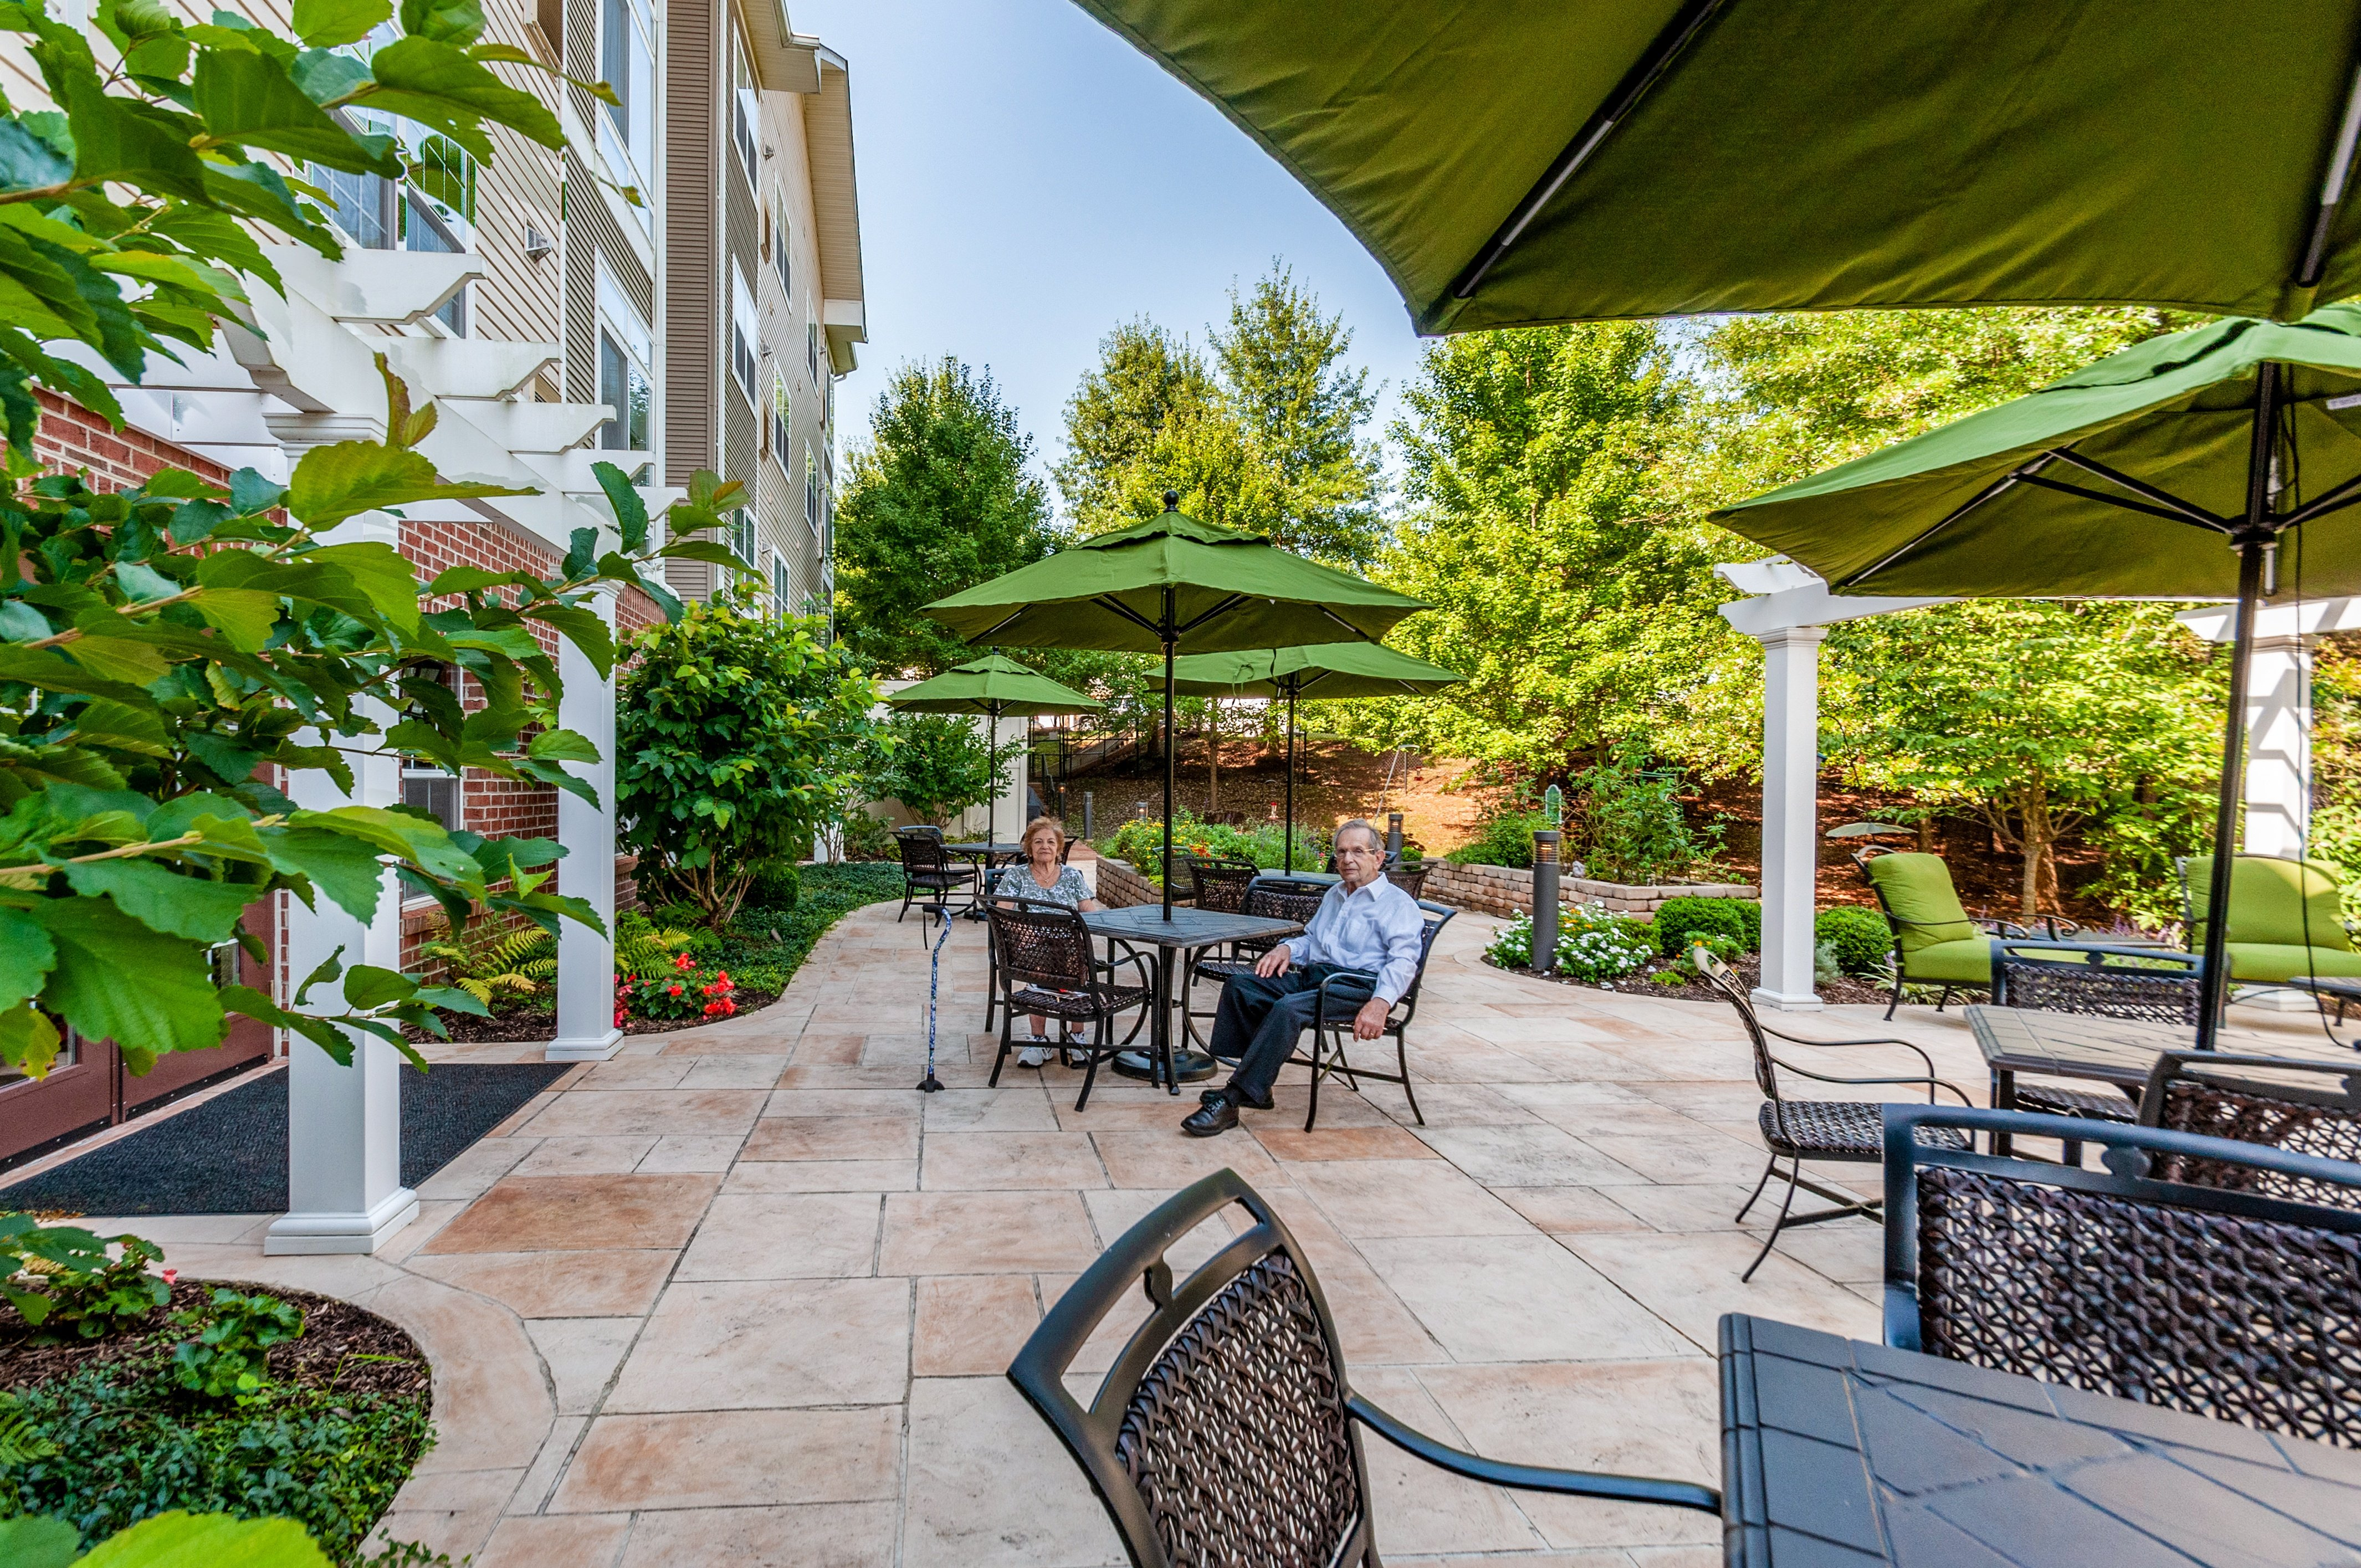 arbor-terrace-of-herndon-Back-Patio